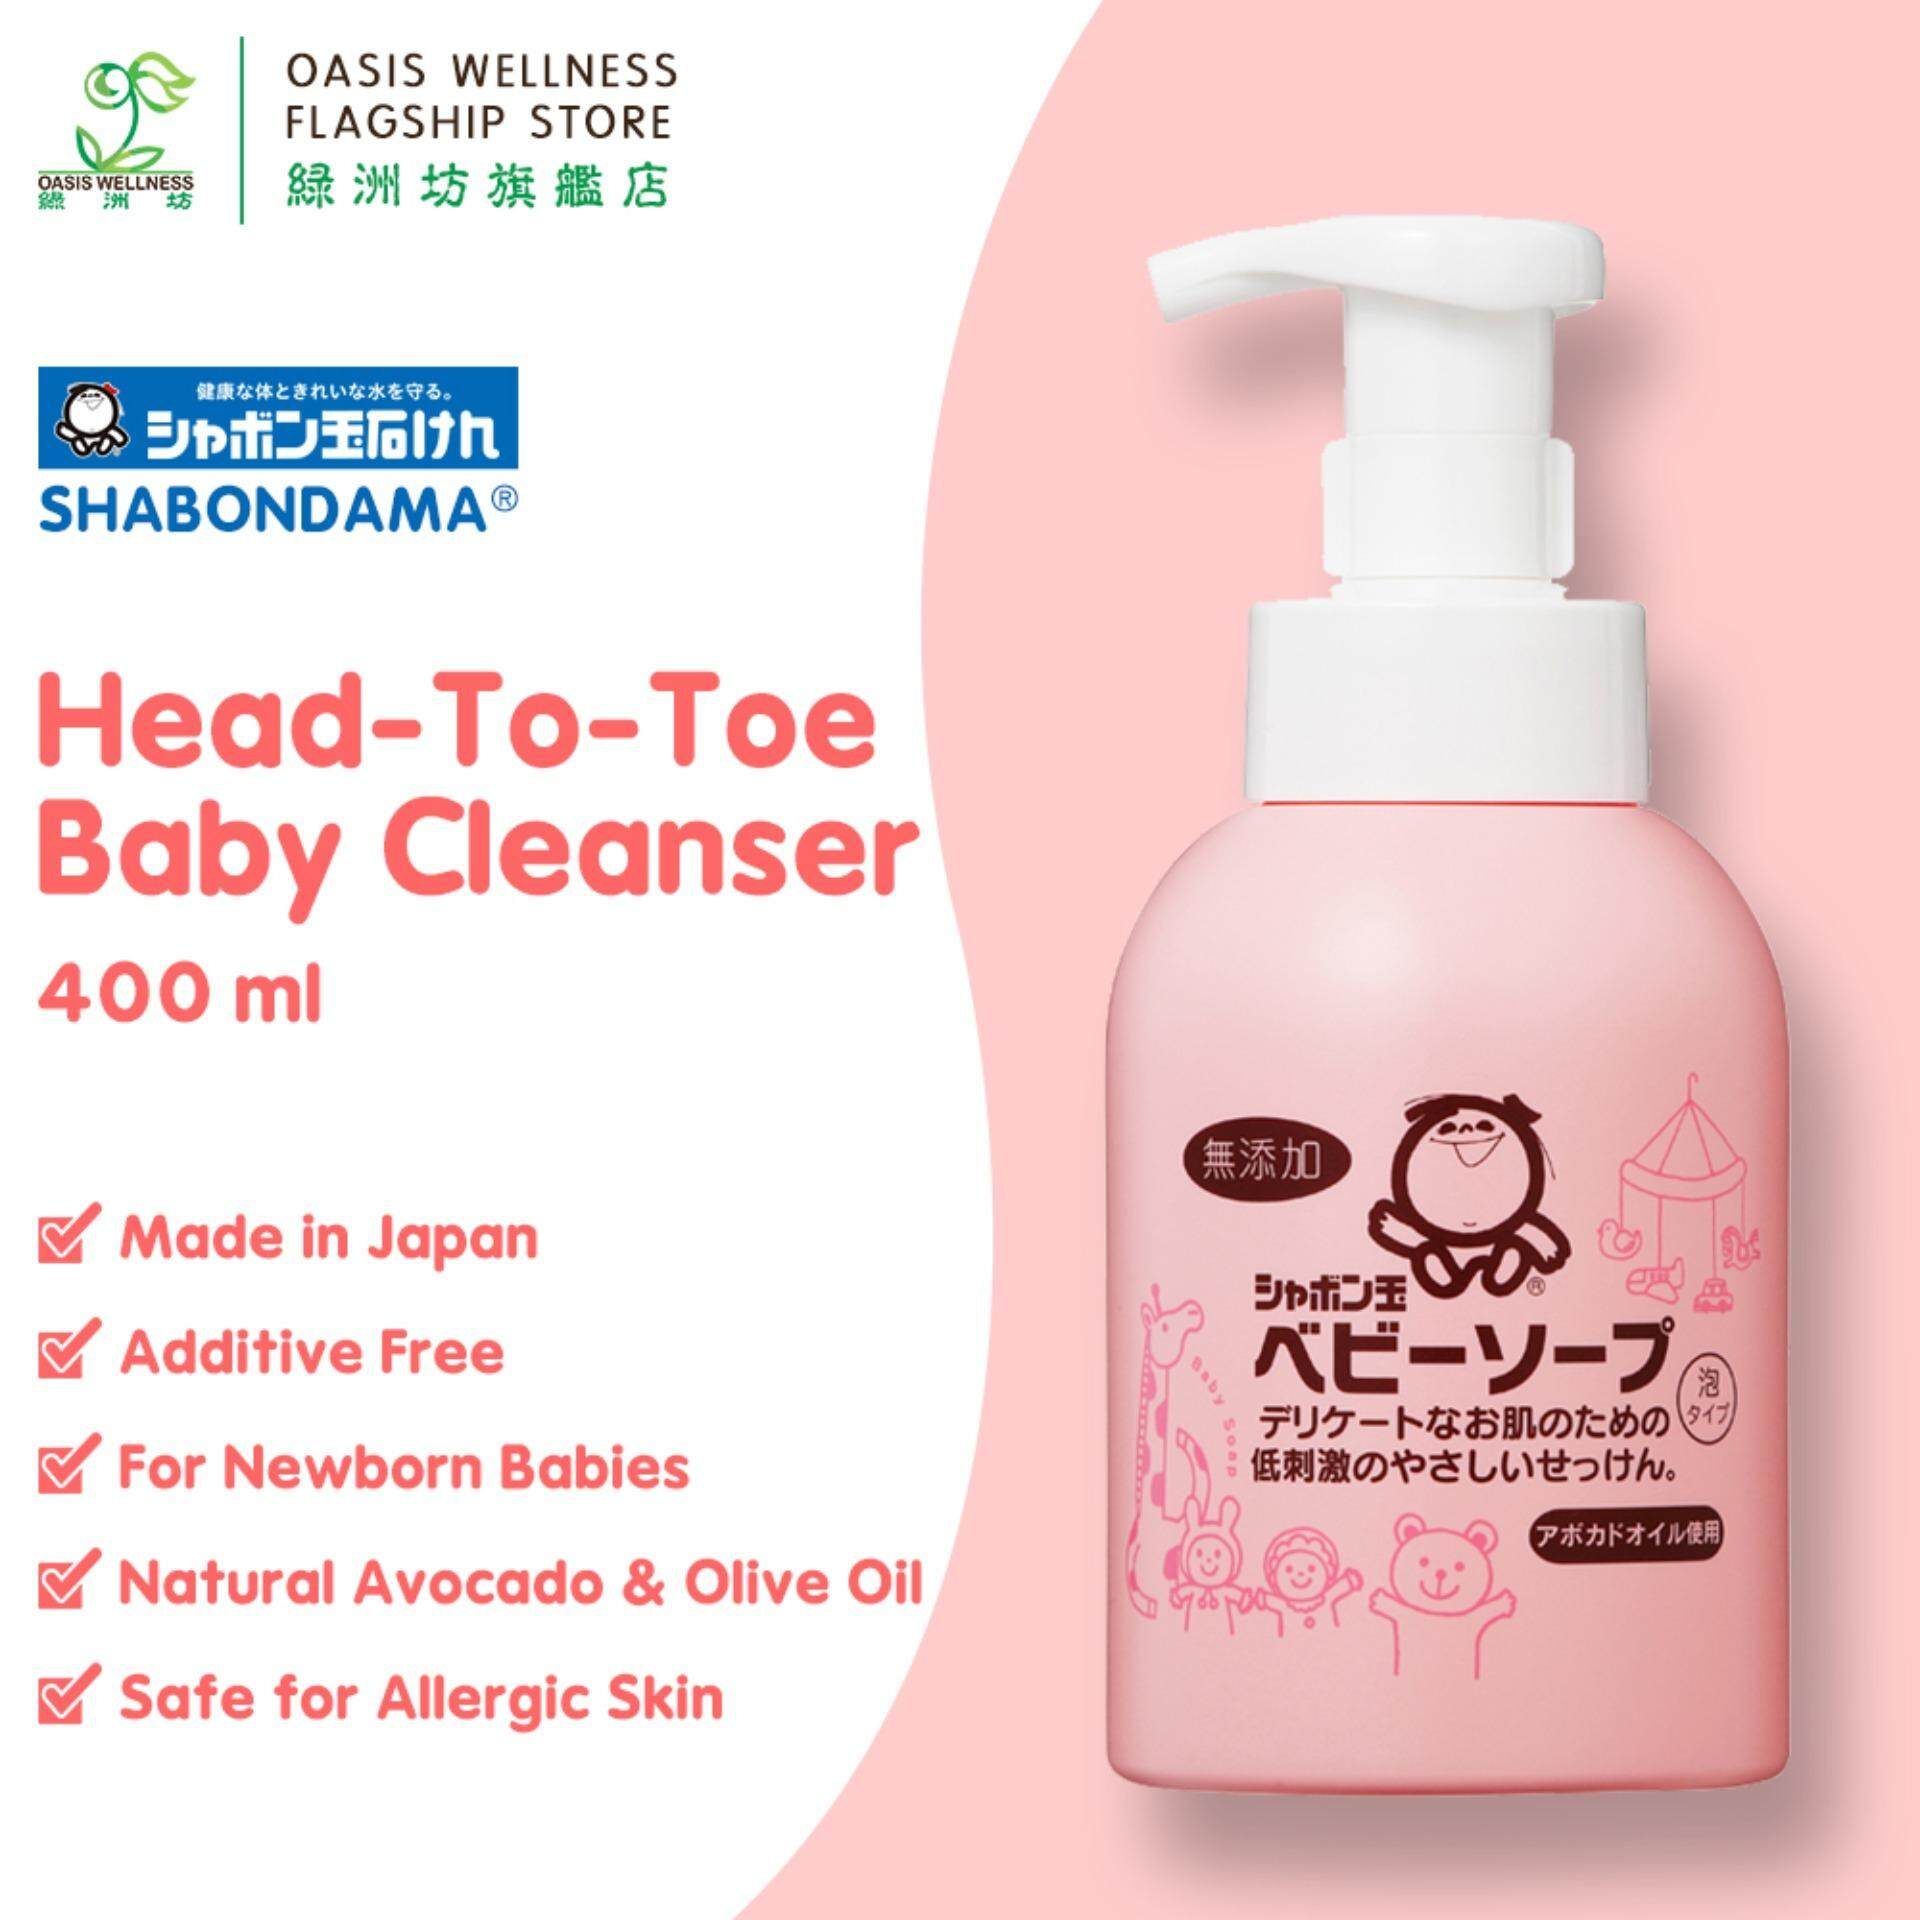 Shabondama Head to Toe Baby Soap Cleanser (400ml) - Natural Avocado Oil Olive Oil Pure Soap - Sabun Mandi Bayi Kanak Kanak - シャボン玉石けん BABY泡泡沐浴露 (400毫升)